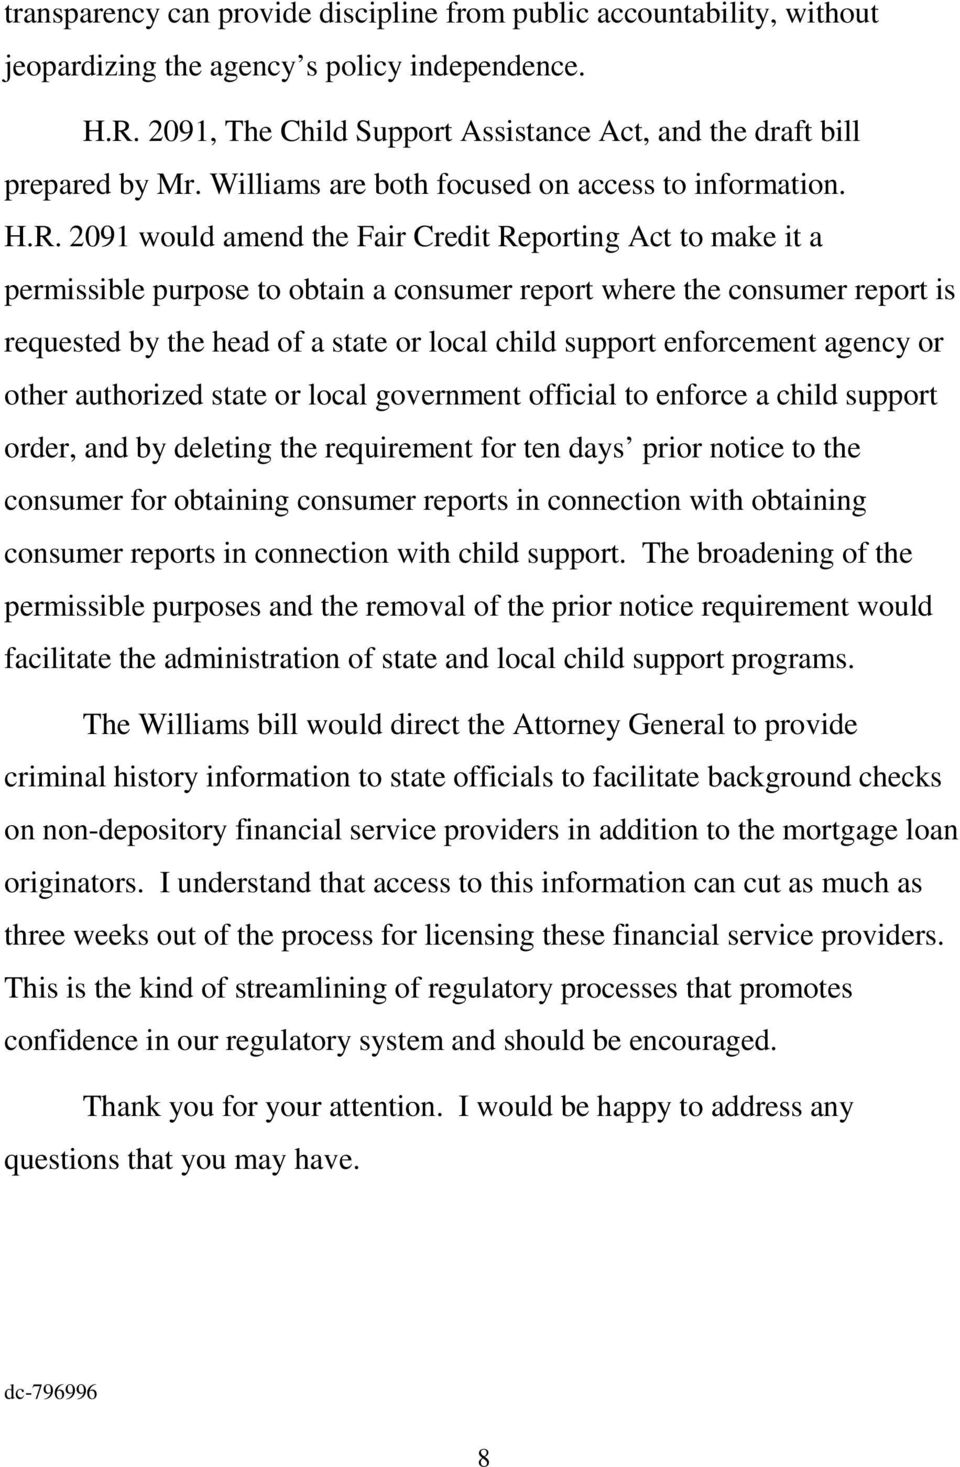 2091 would amend the Fair Credit Reporting Act to make it a permissible purpose to obtain a consumer report where the consumer report is requested by the head of a state or local child support